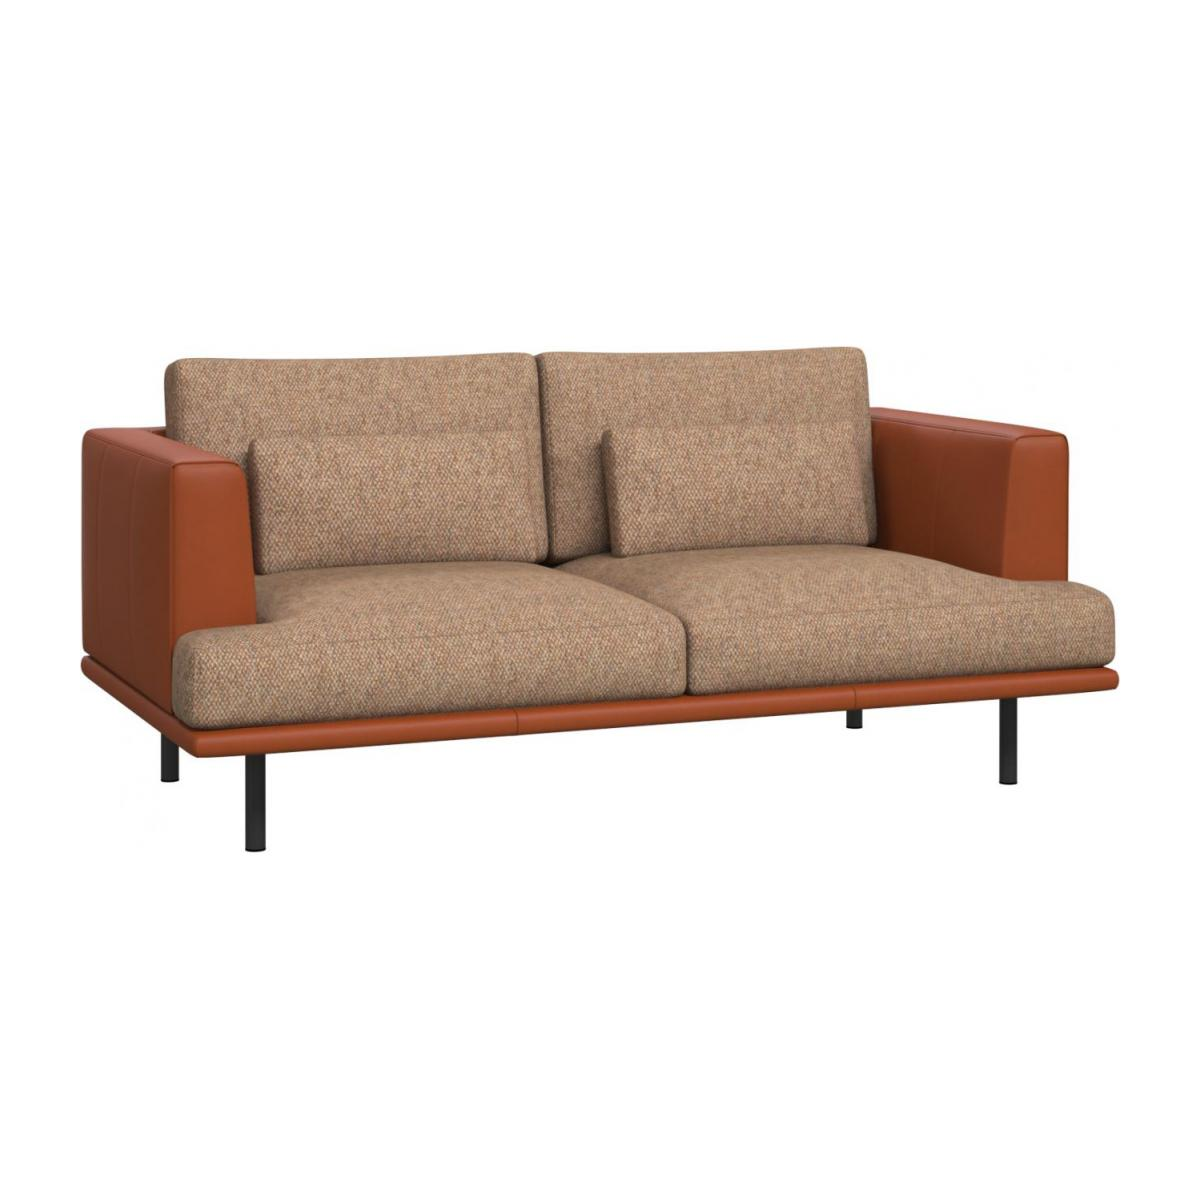 2 seater sofa in Bellagio fabric, passion orange with base and armrests in brown leather n°1